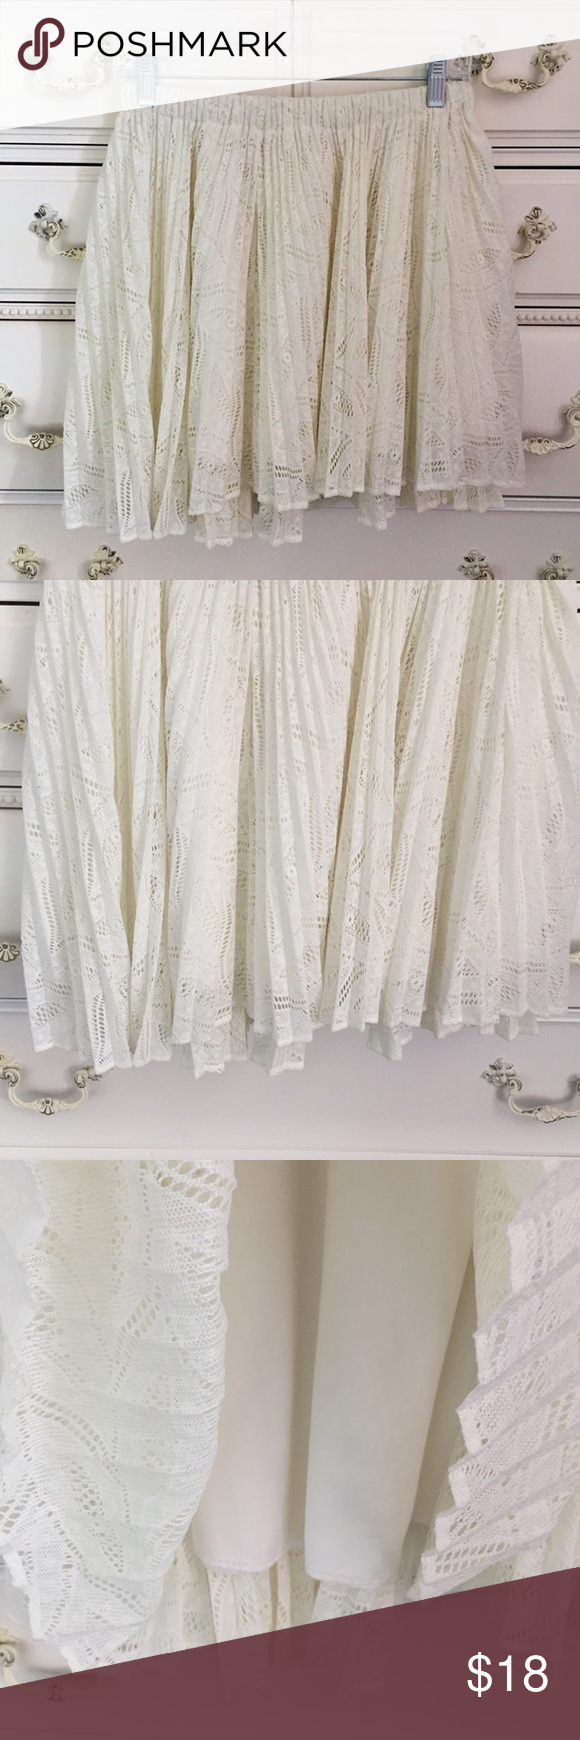 """Urban Outfitters Pins and Needles Lace Skirt Urban Outfitters Pins and Needles Lace Off-white Skirt. Lined underneath. Size large. Waist 28"""" Top to bottom 16"""" Excellent Condition! Let me know if you have any questions! ✅ I LOVE OFFERS ✅ 💜INSTAGRAM: @ocaputostyle Urban Outfitters Skirts"""